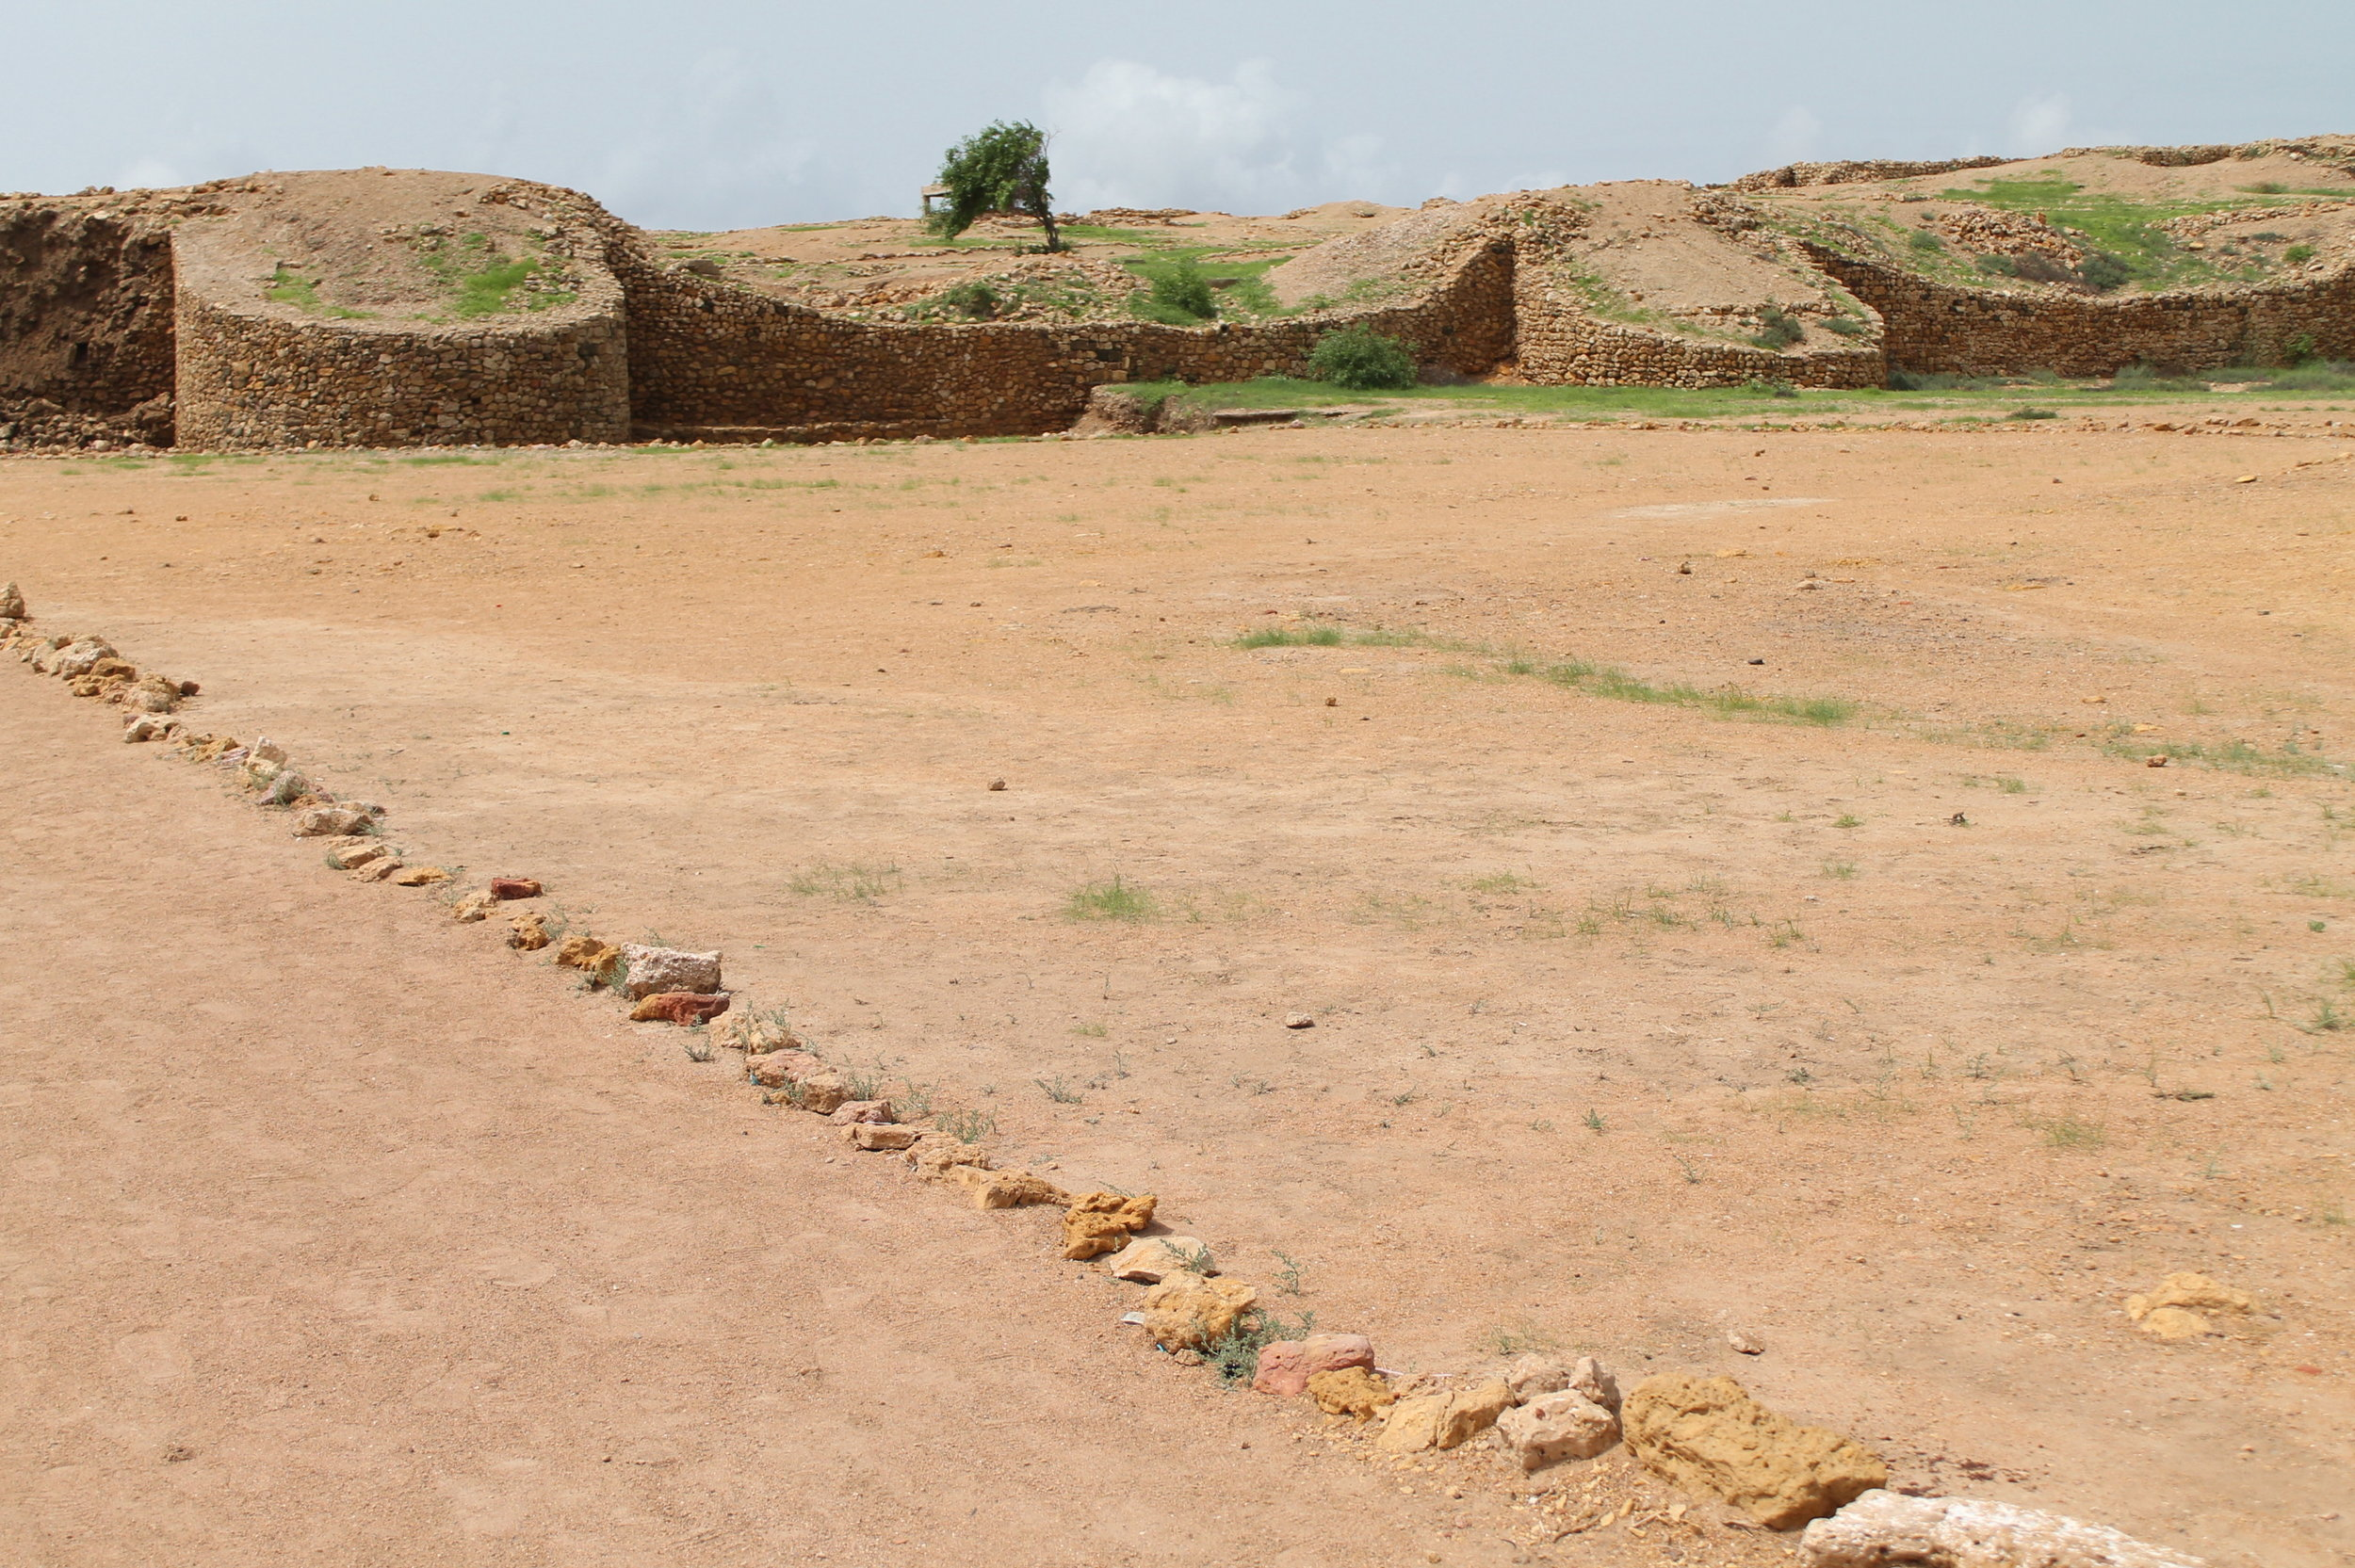 Walking to the archaeological site of Bhambhore